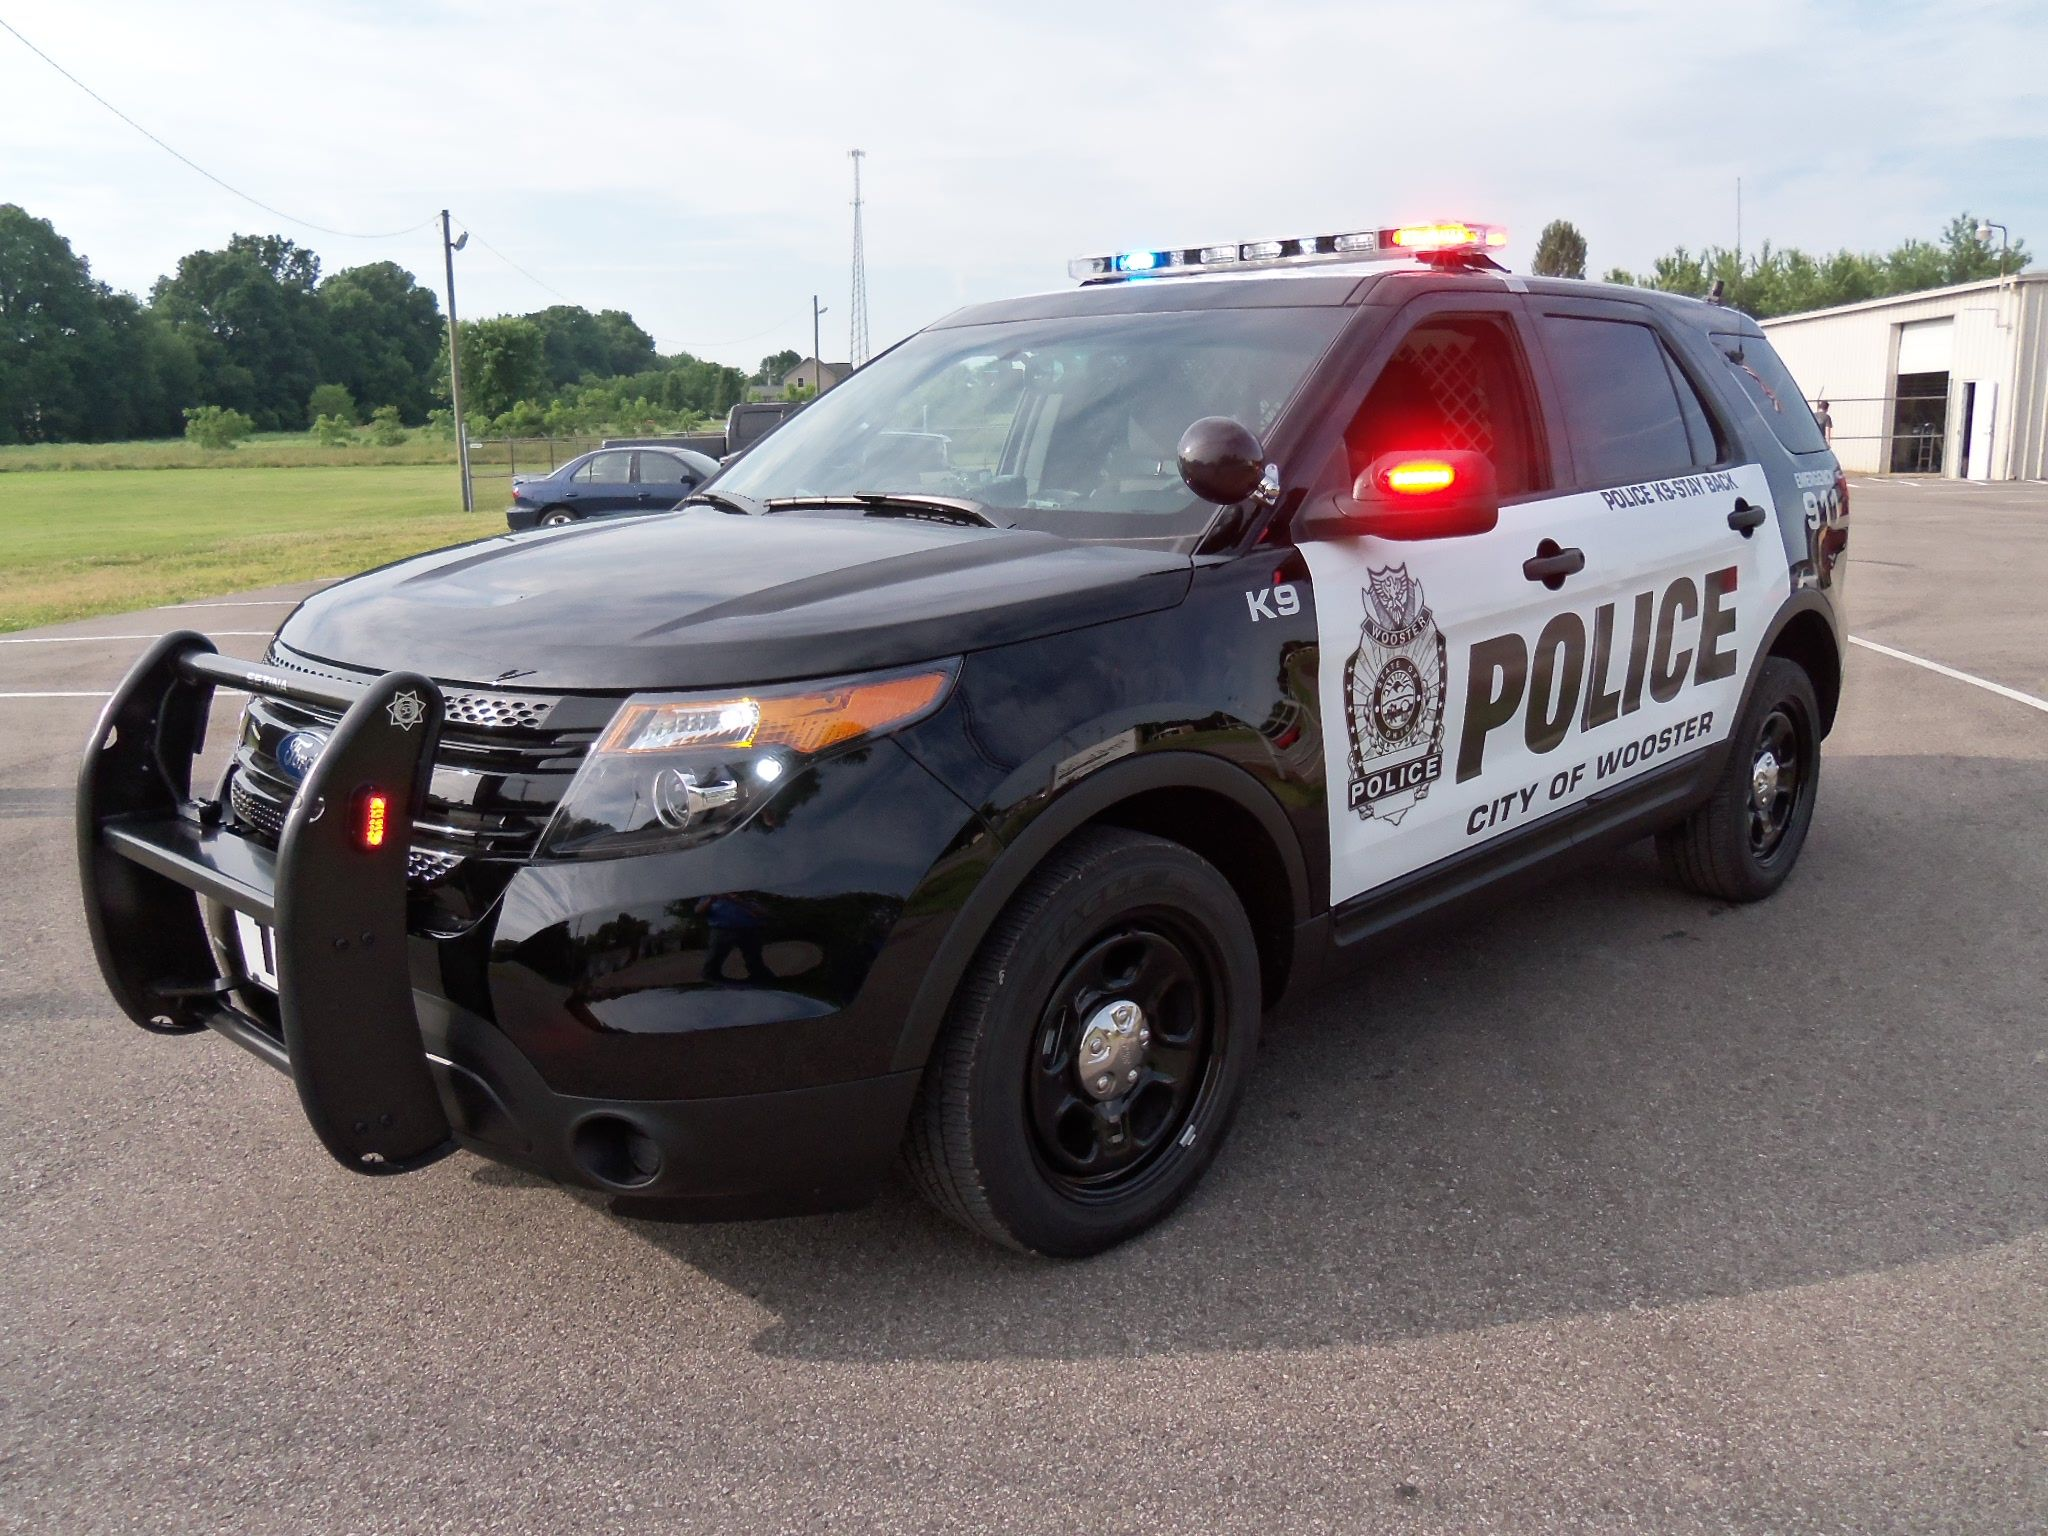 Ford police interceptor utility vehicle wooster ohio police department this vehicle has a